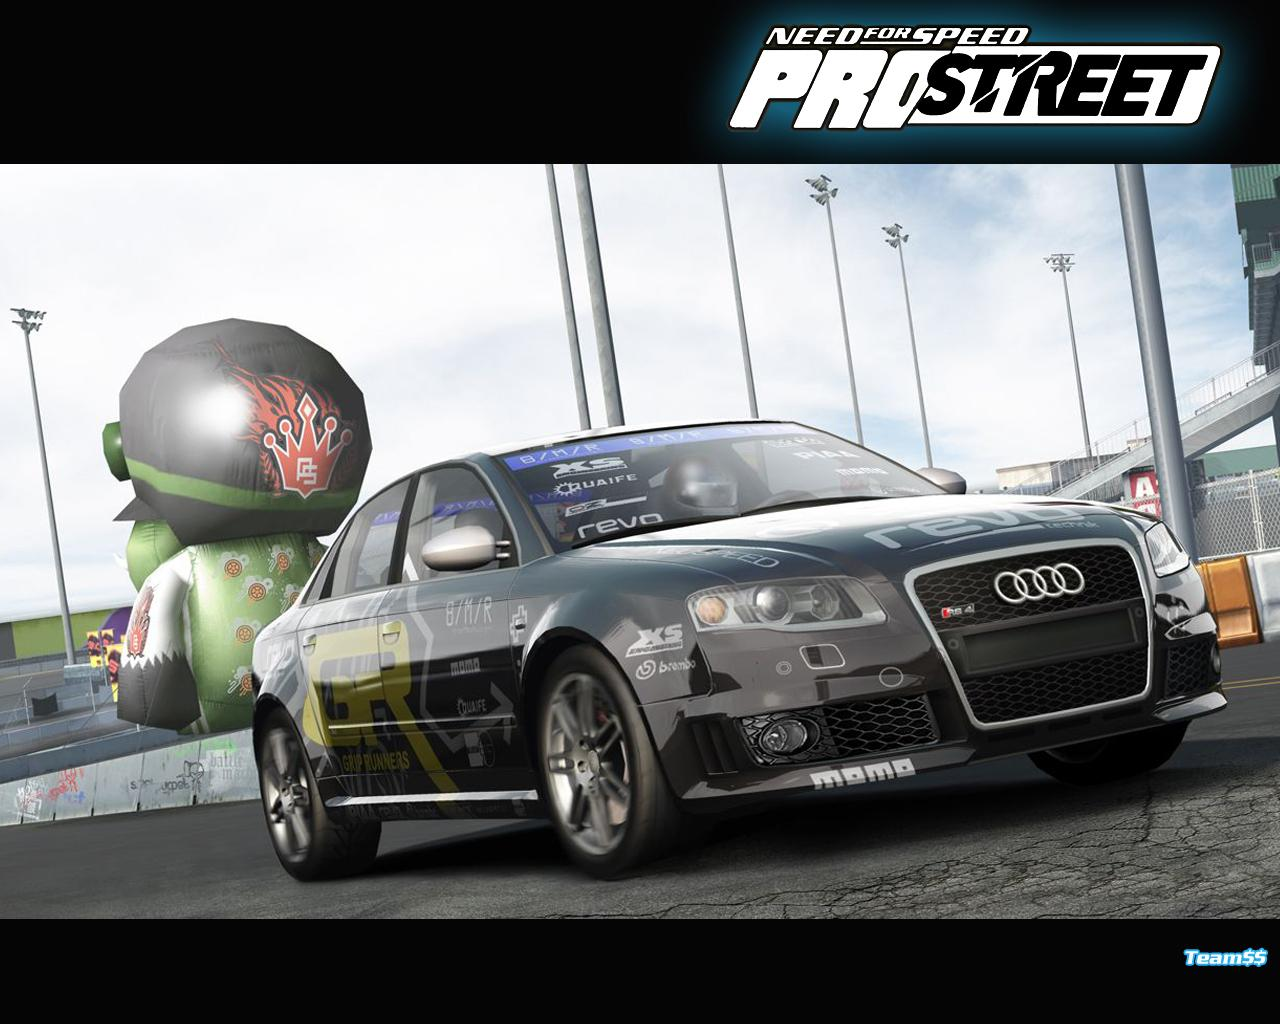 wallpaper need for speed need for speed pro street games 1280x1024